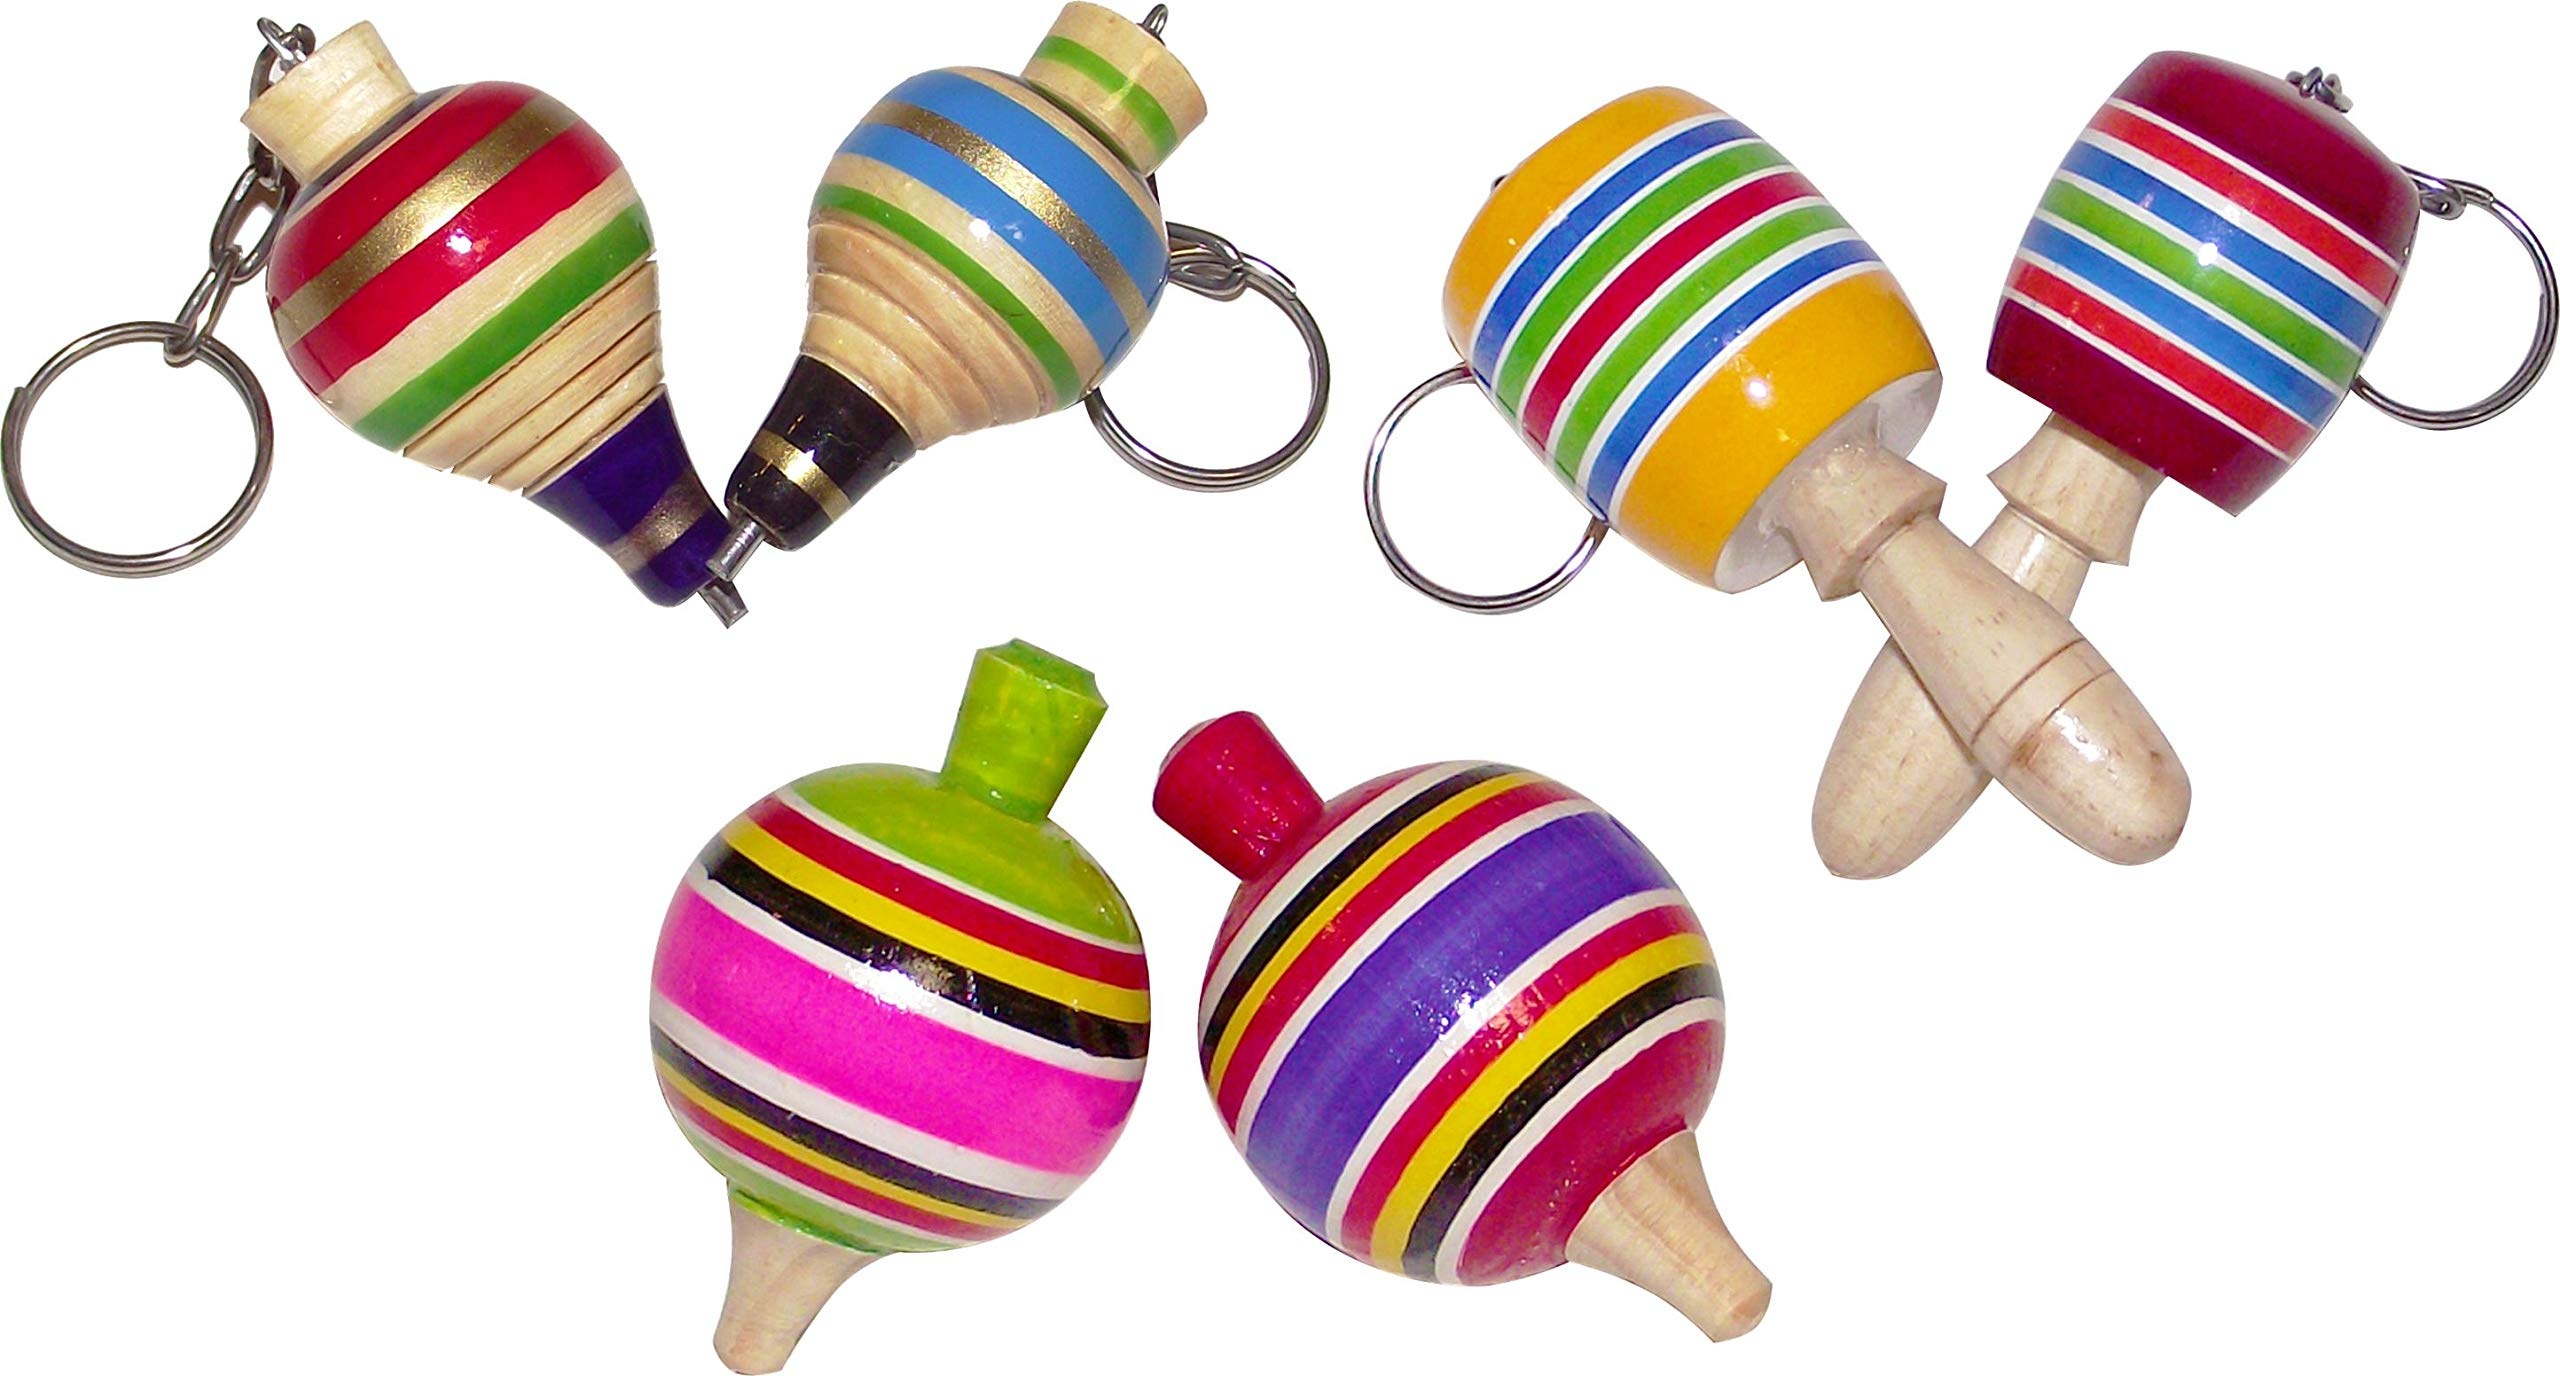 MoreFiesta Fine Mini Wooden Balero, Spin top and Trompo Keychain - Six Traditional Mexican Miniature Toys Box